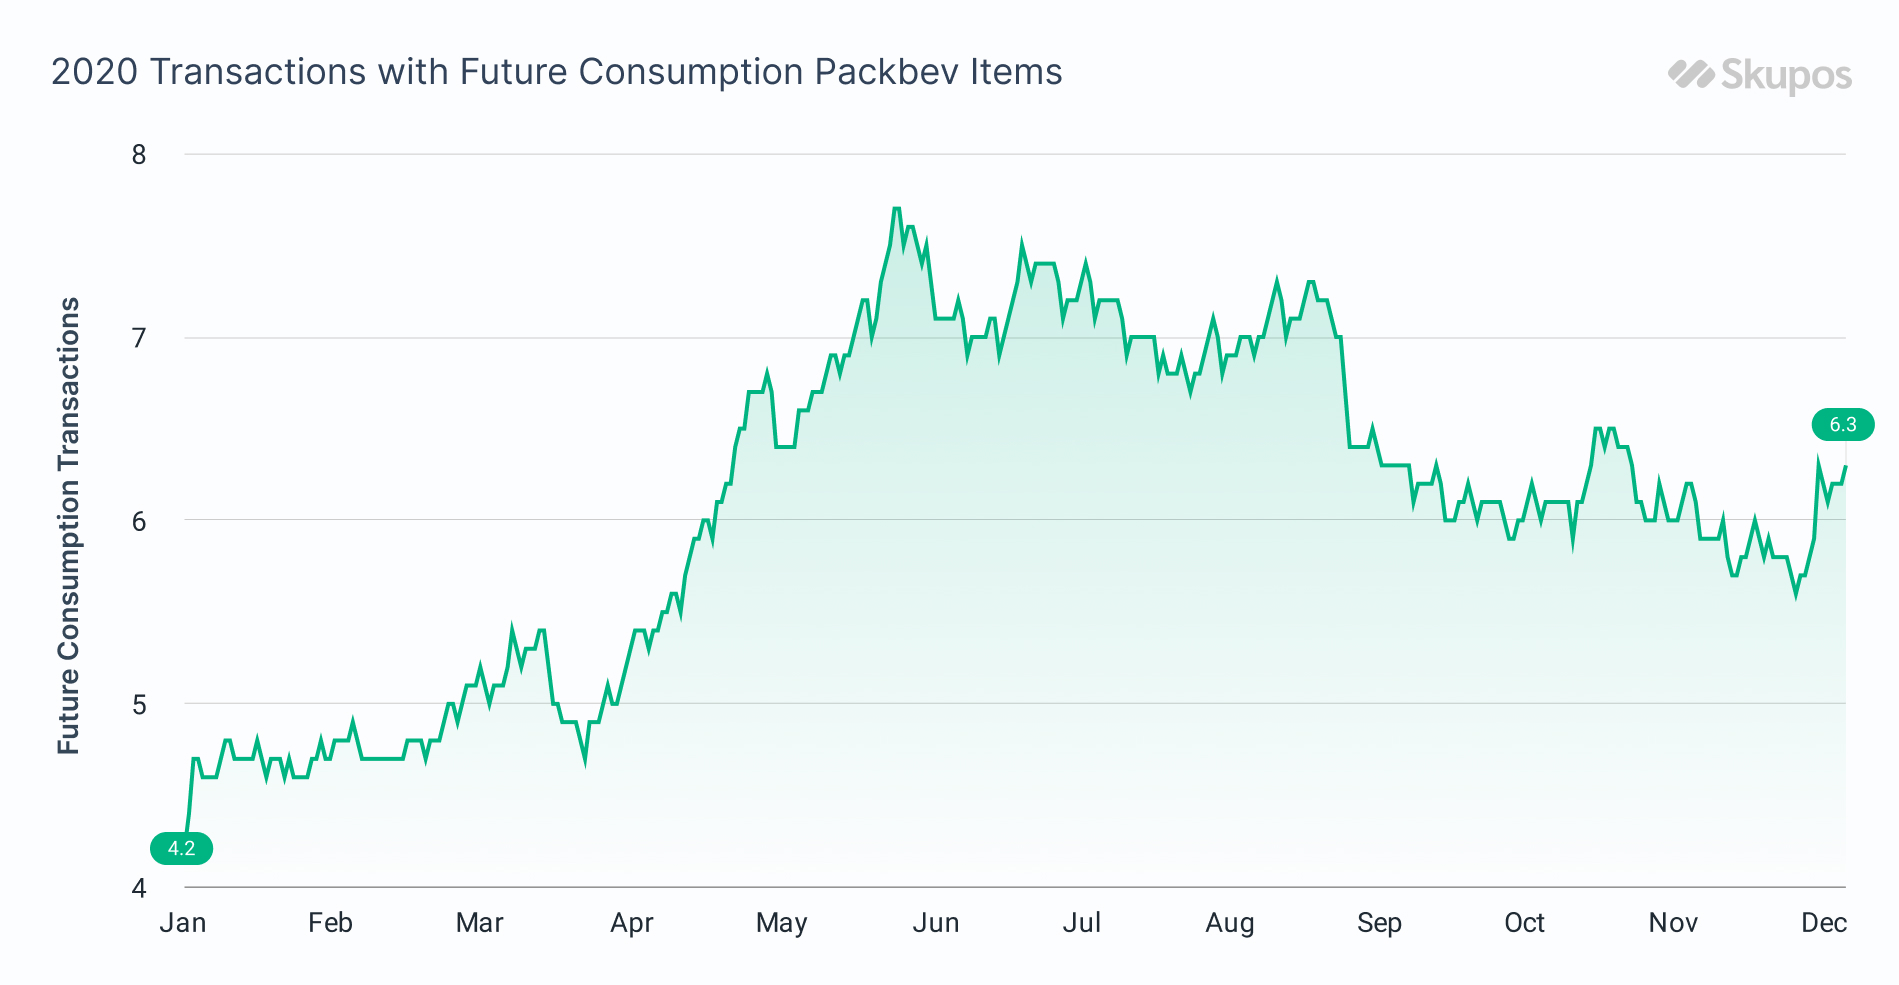 2020 Transactions with Future Consumption Packbev Items